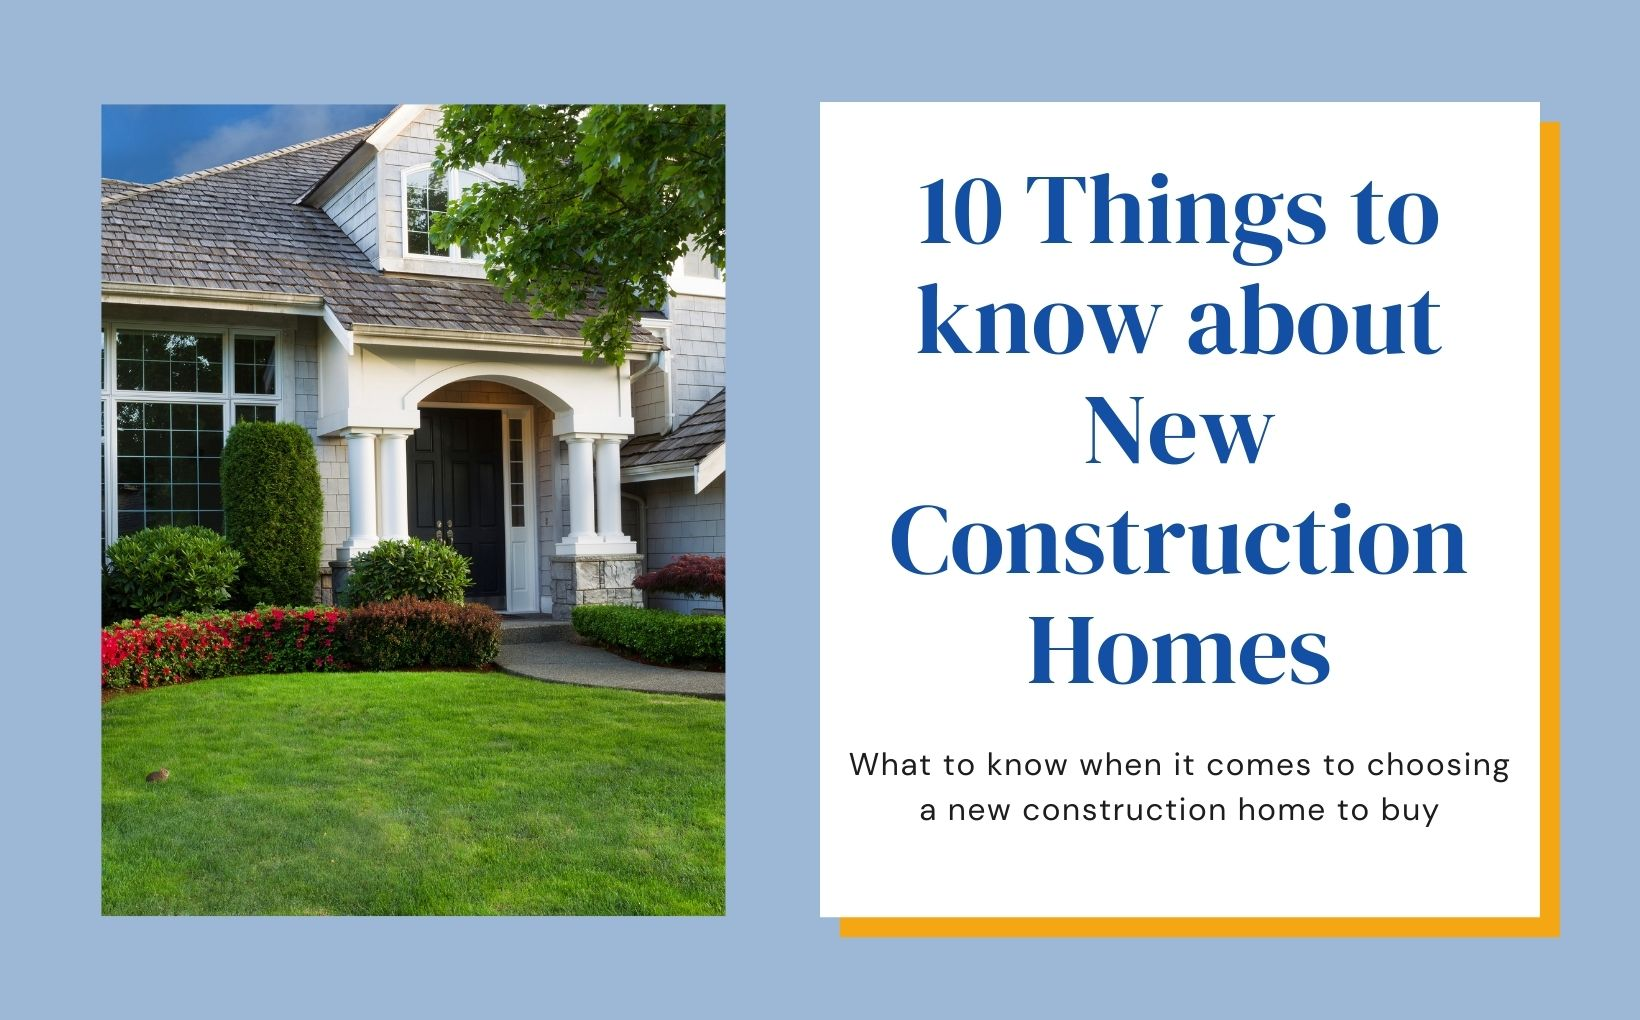 10 things to know about new construction homes in Portland Oregon feature image